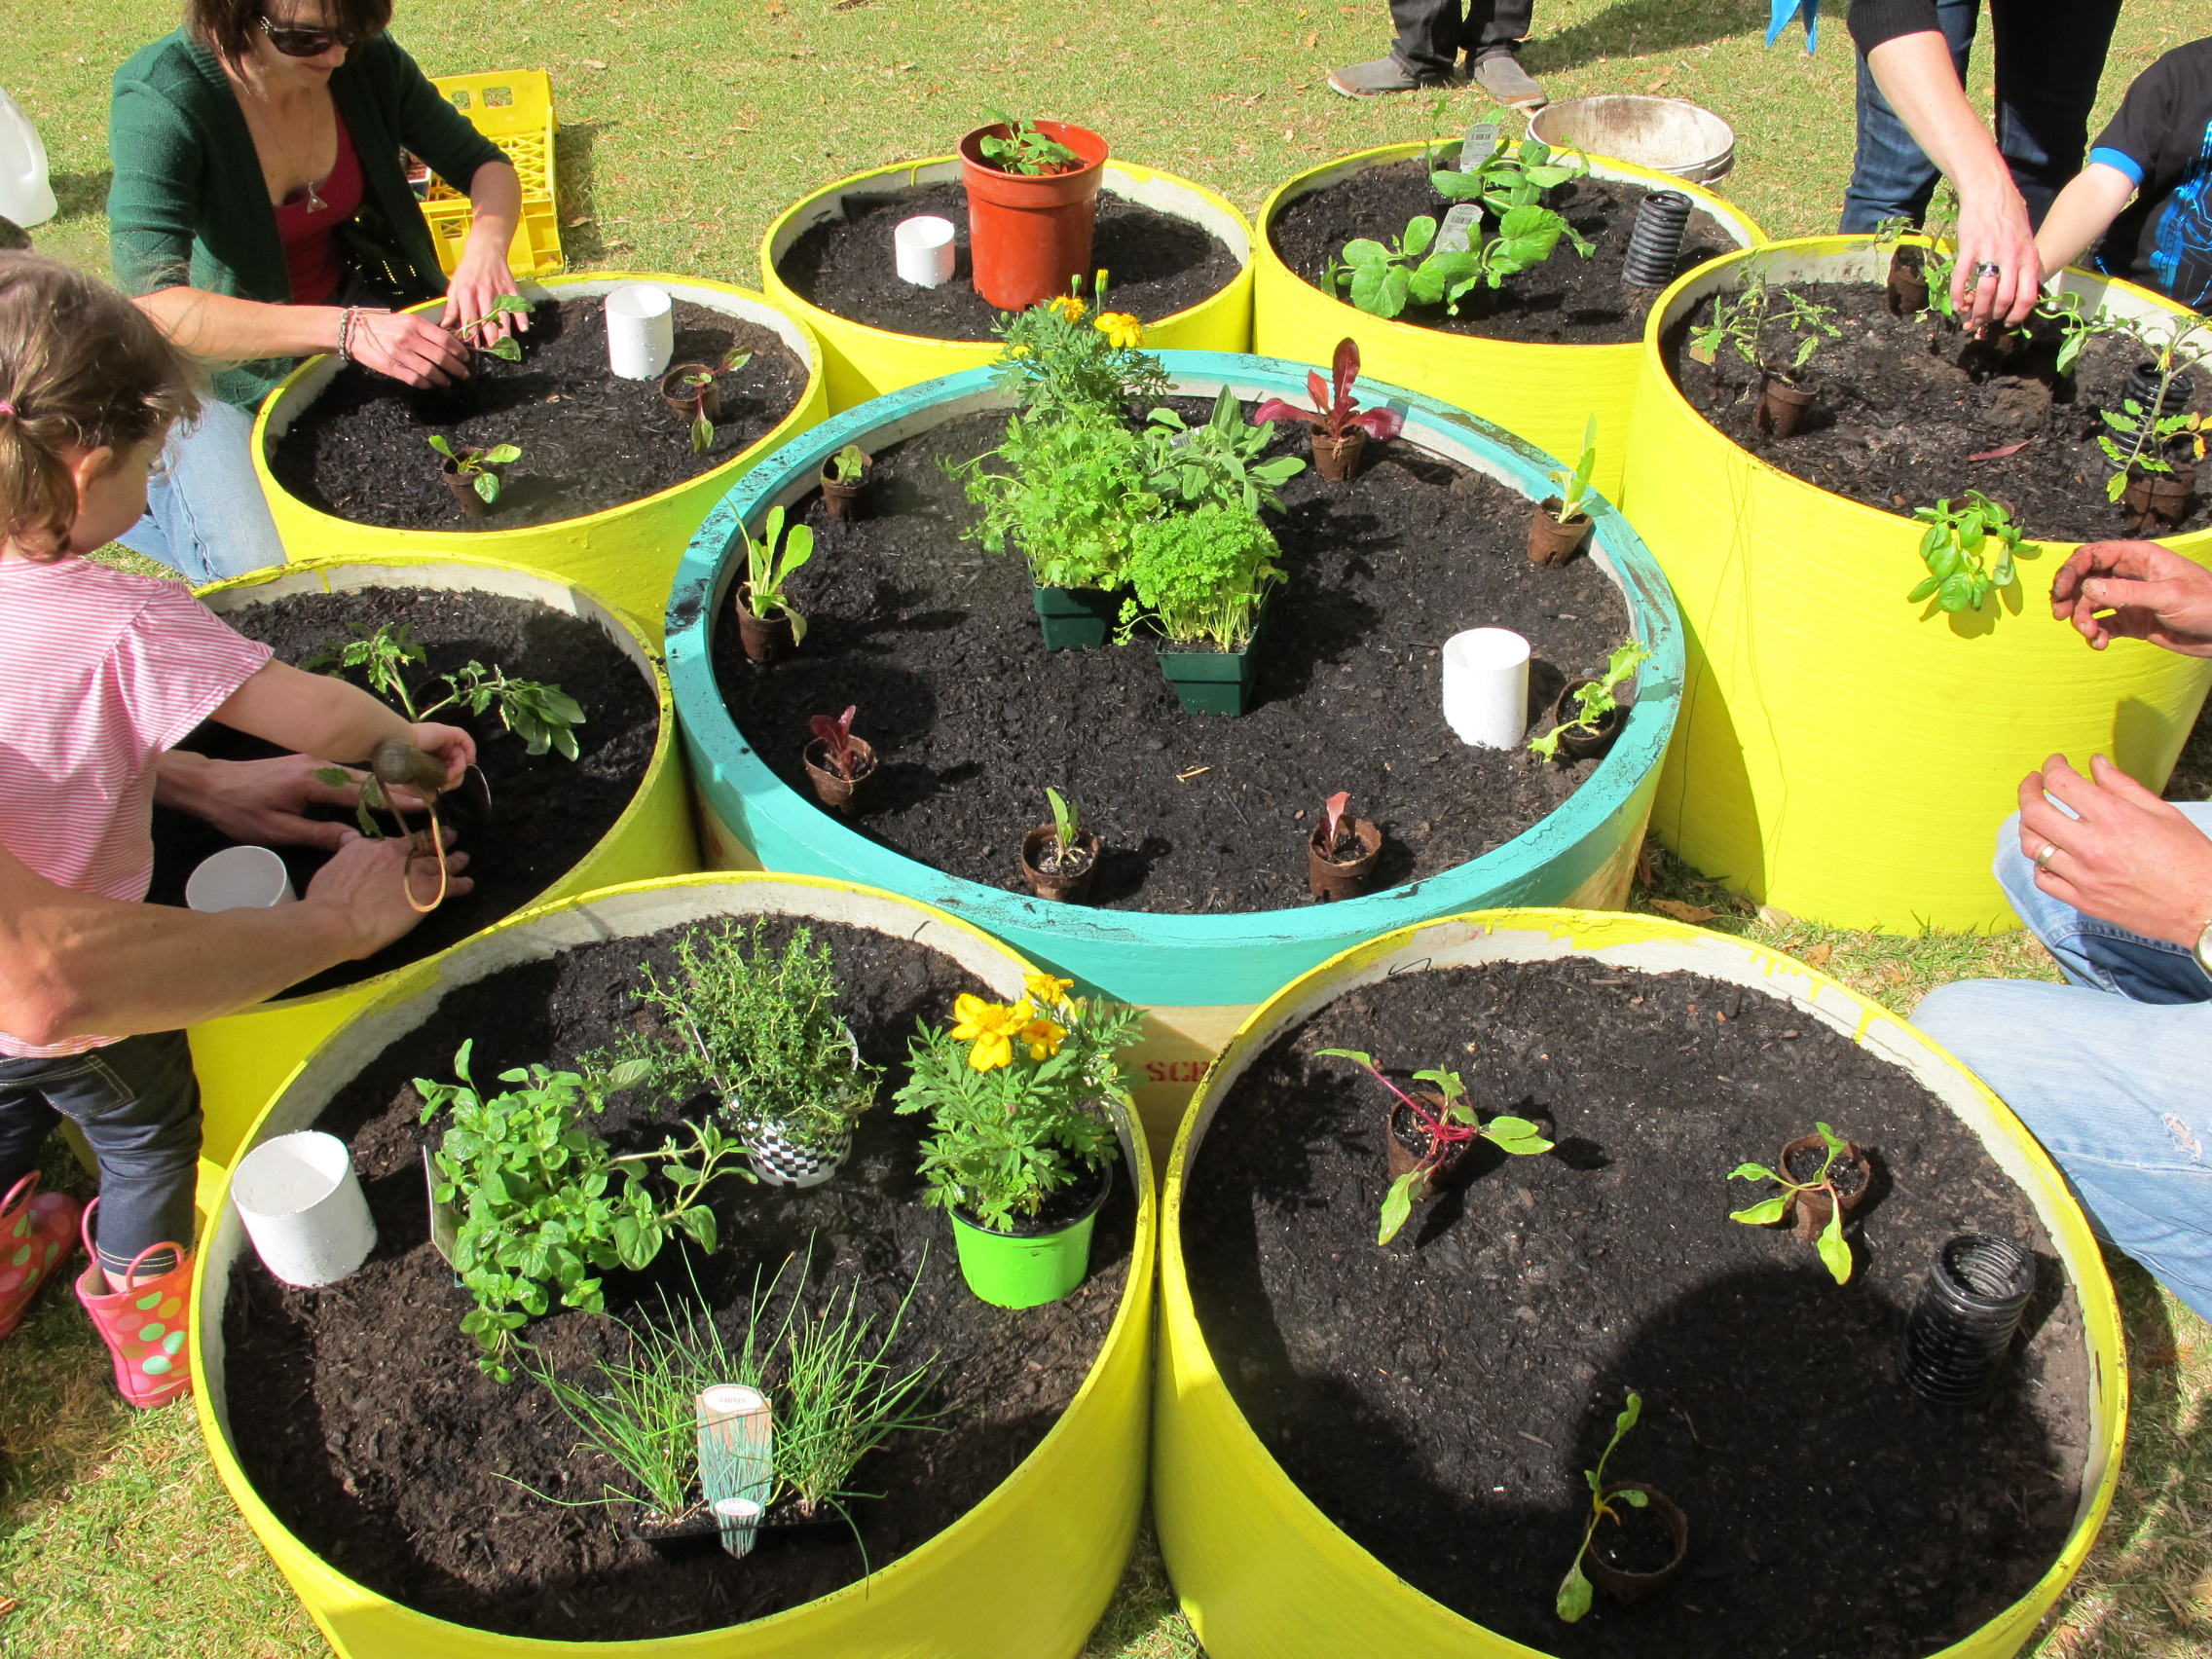 Pop Up Patches Kitchen Garden Education Projects Design Adelaide South Australia